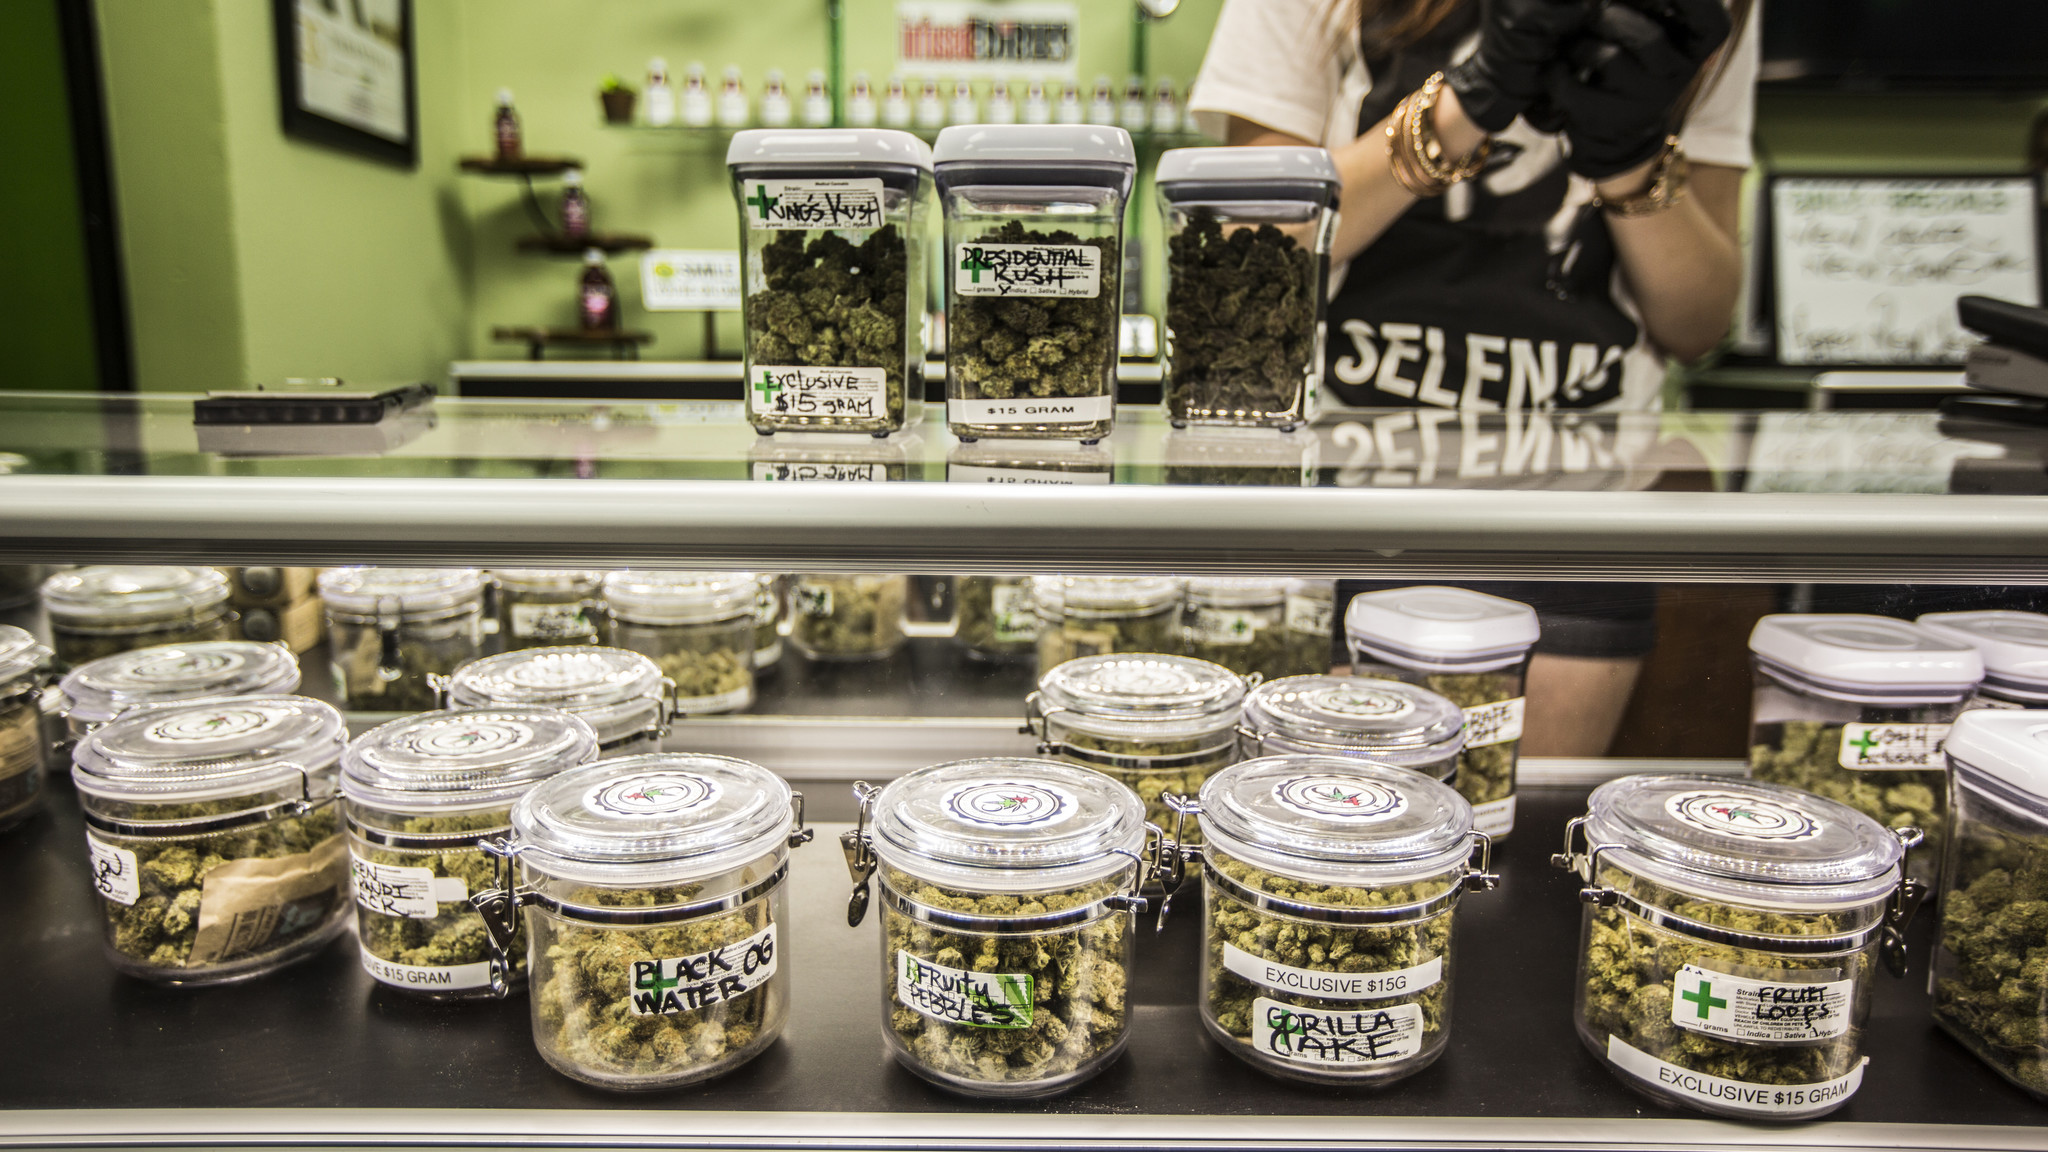 For marijuana users, it's high times as California makes recreational use legal